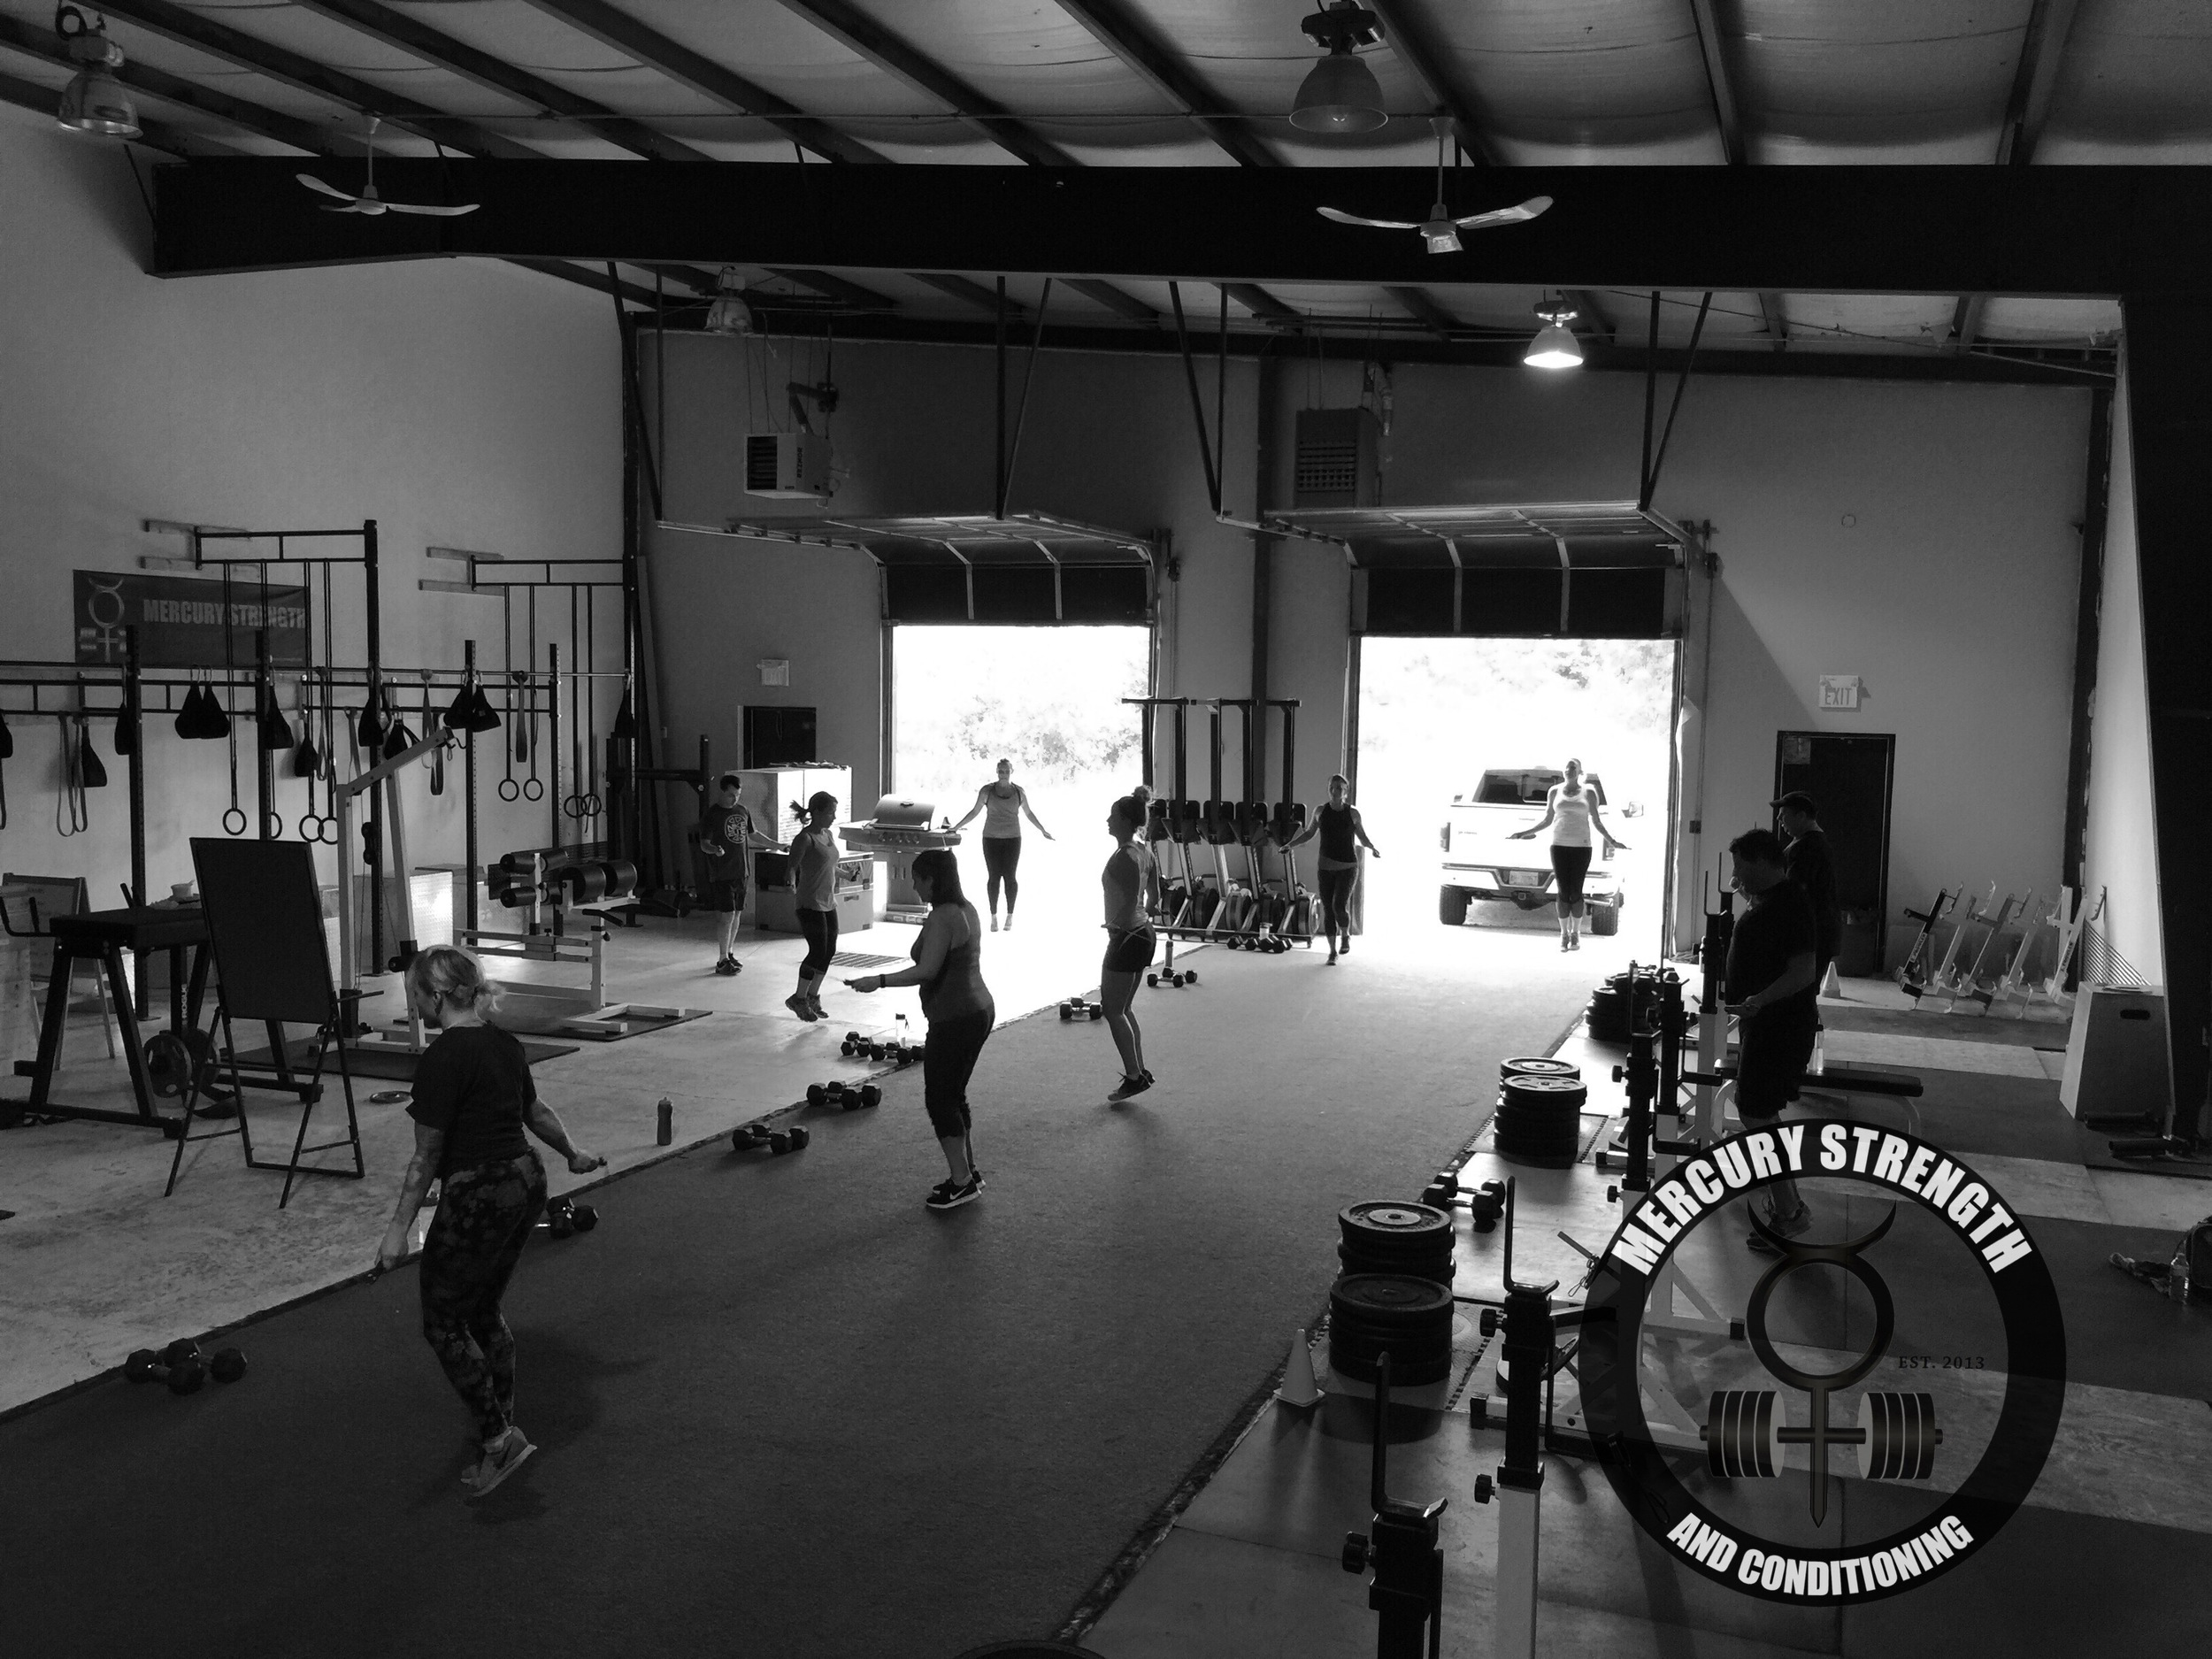 A packed 16:45 session with some skipping/double unders.